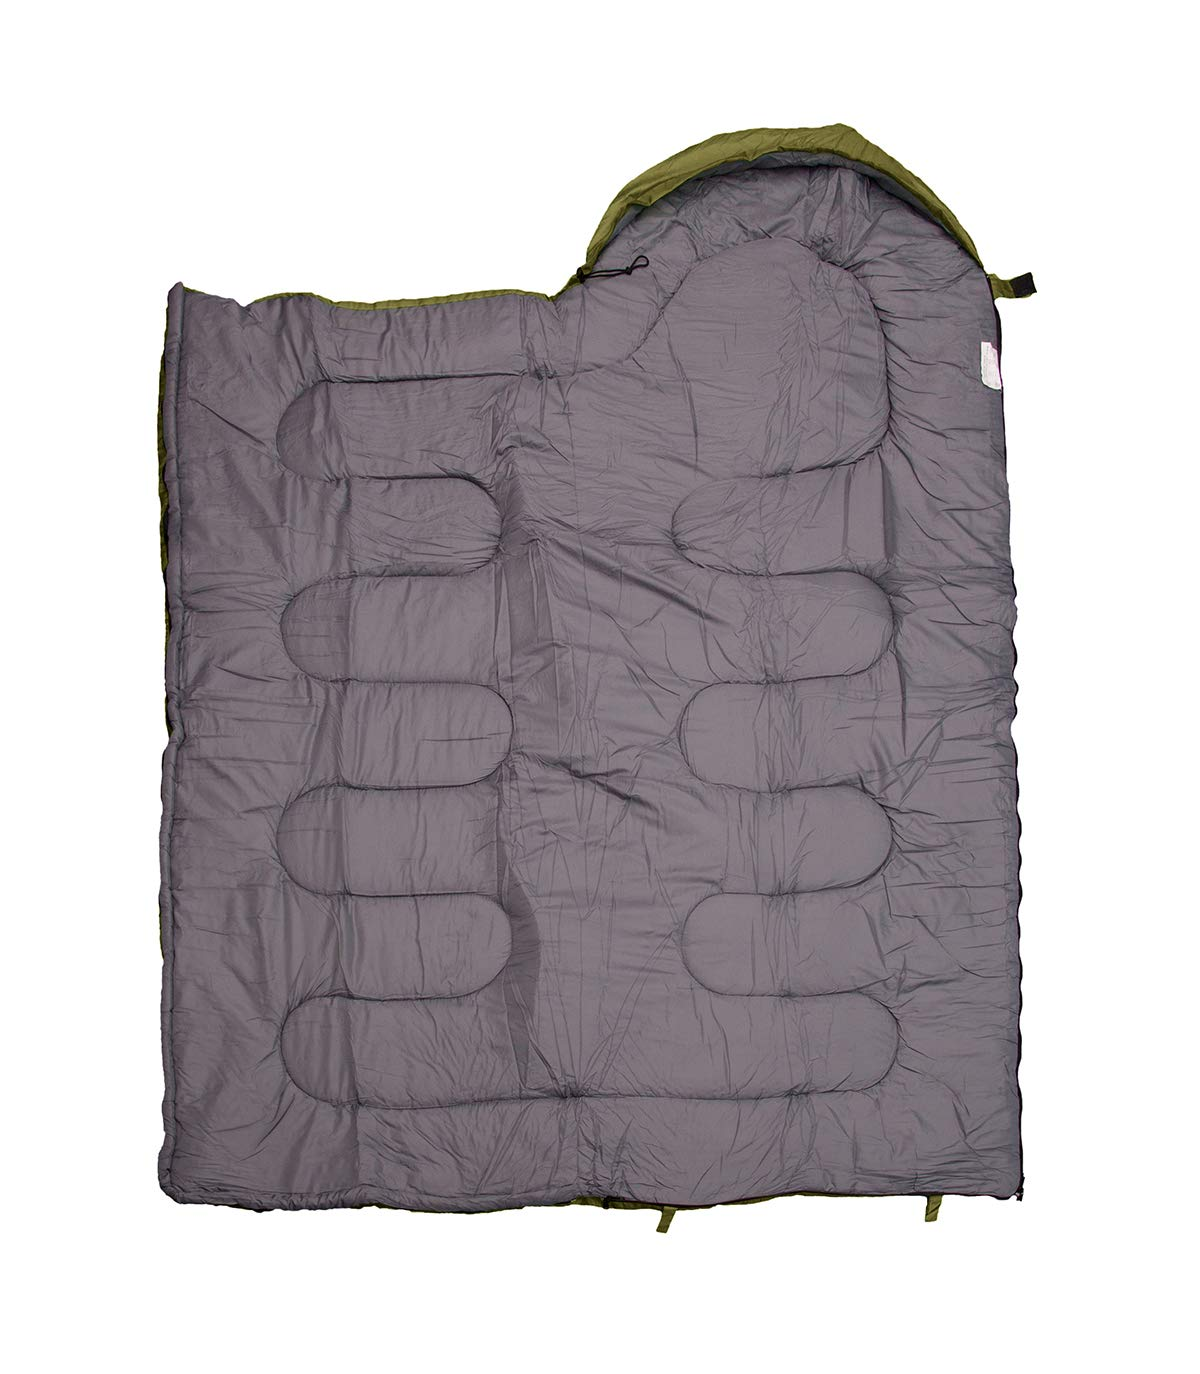 REVALCAMP Sleeping Bag for Cold Weather - 4 Season Envelope Shape Bags by Great for Kids, Teens & Adults. Warm and Lightweight - Perfect for Hiking, Backpacking & Camping 5